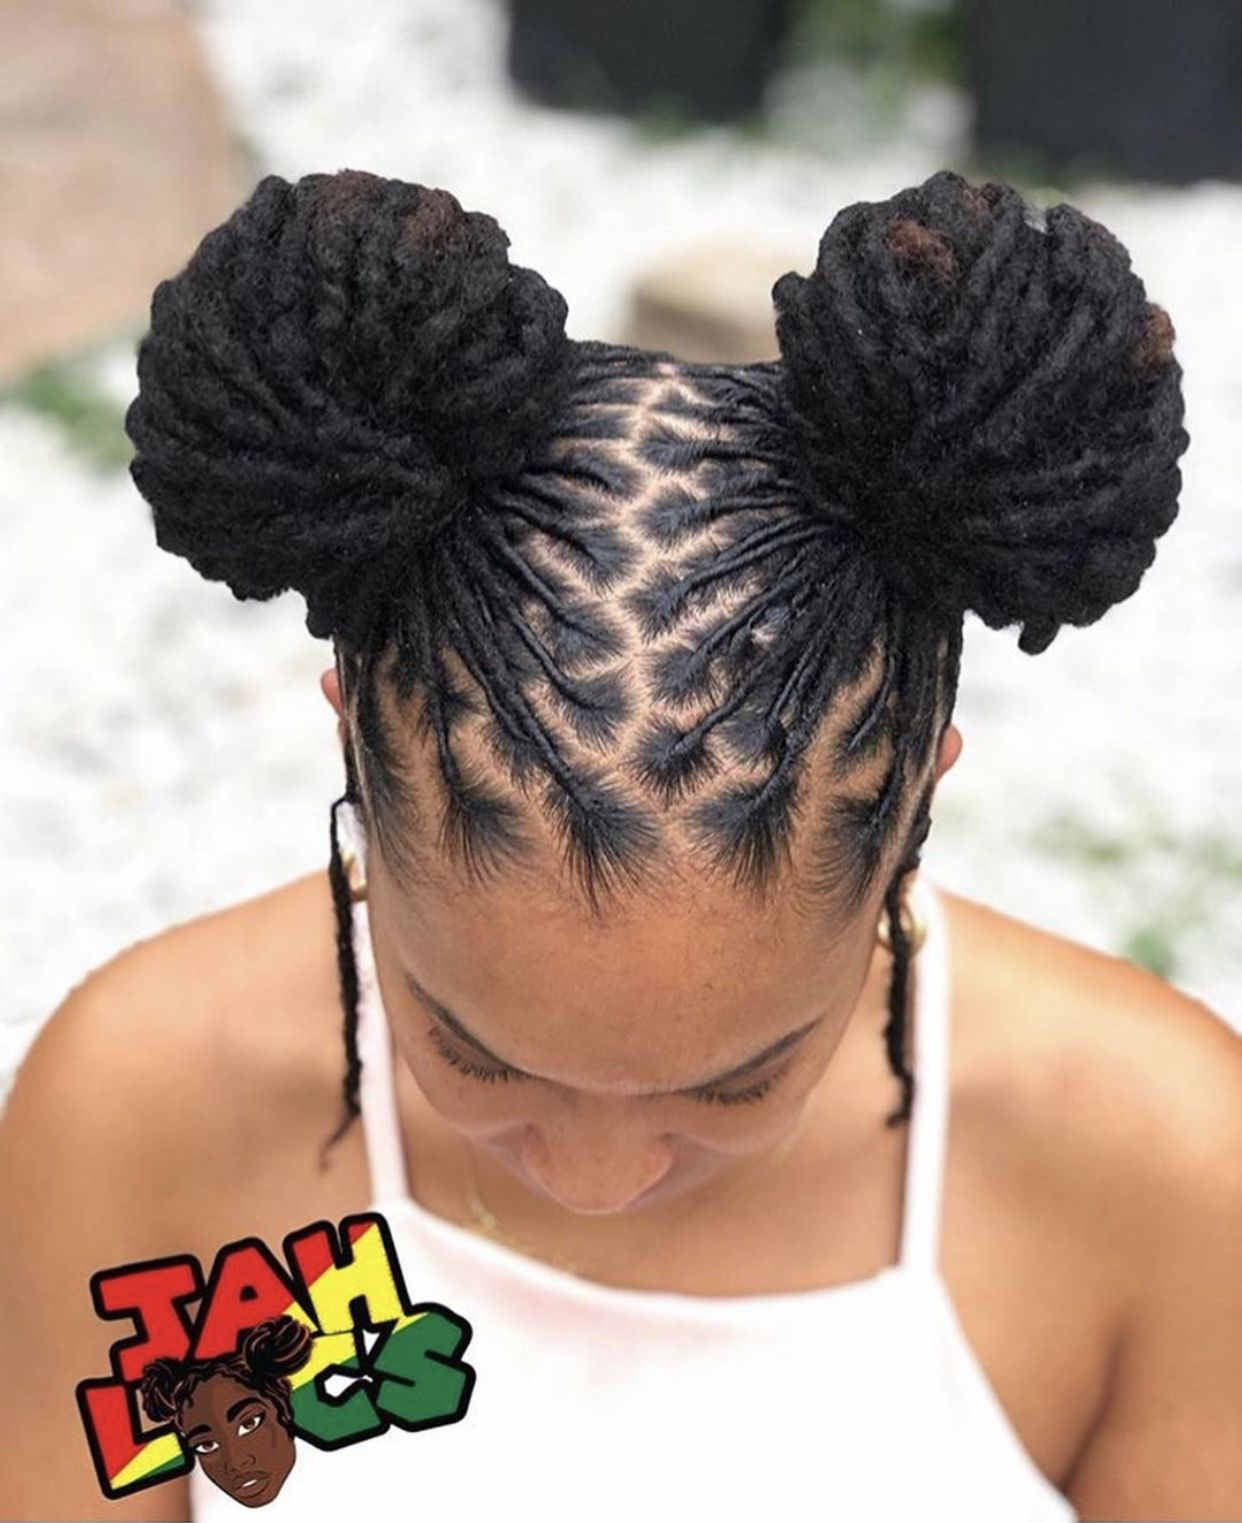 Check Out Simonelovee Short Locs Hairstyles Locs Hairstyles Dreadlock Hairstyles Black